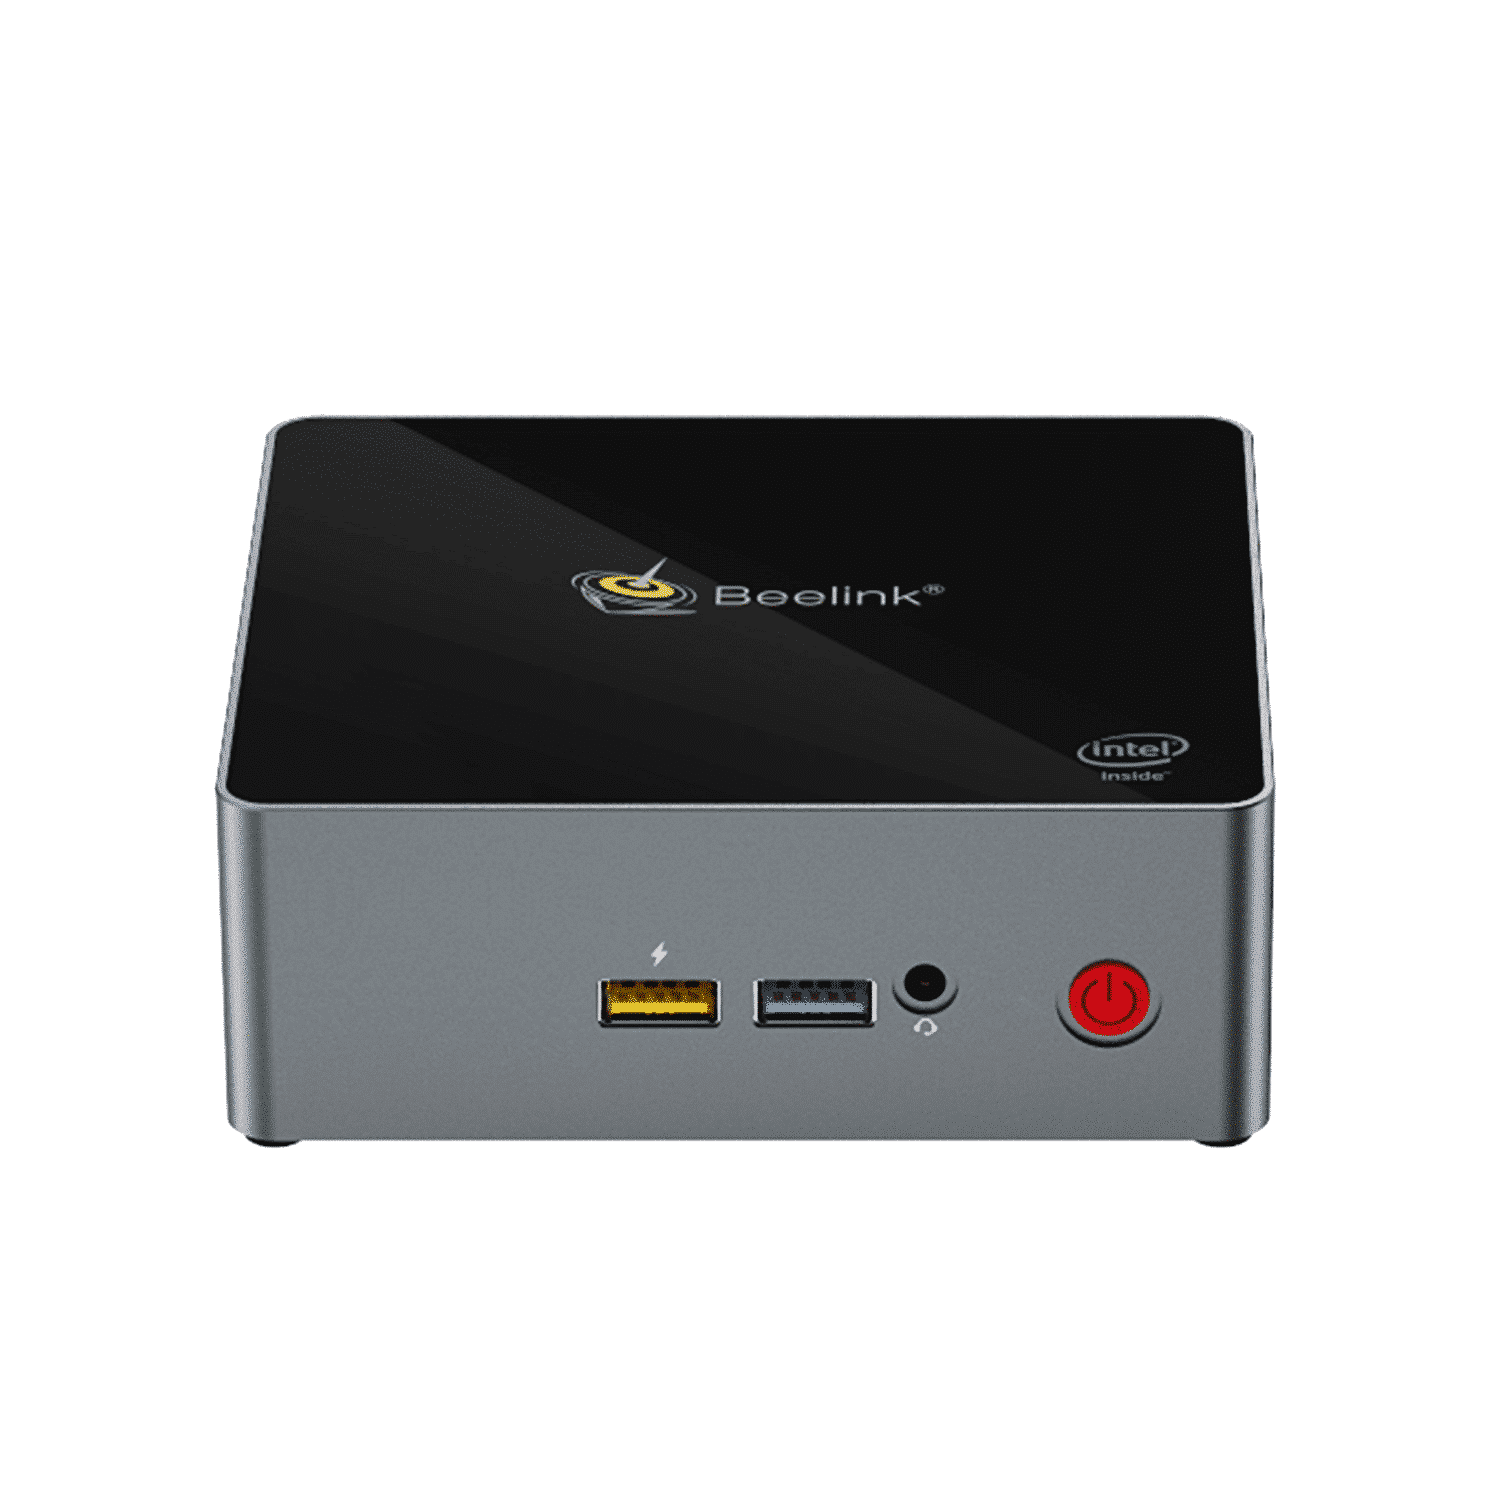 Beelink J45 Windows 10 Mini Computer for Home or Office - Front View showing Power Port, 2x USB Type-A and 3.5mm Headphone&Microphone Jack